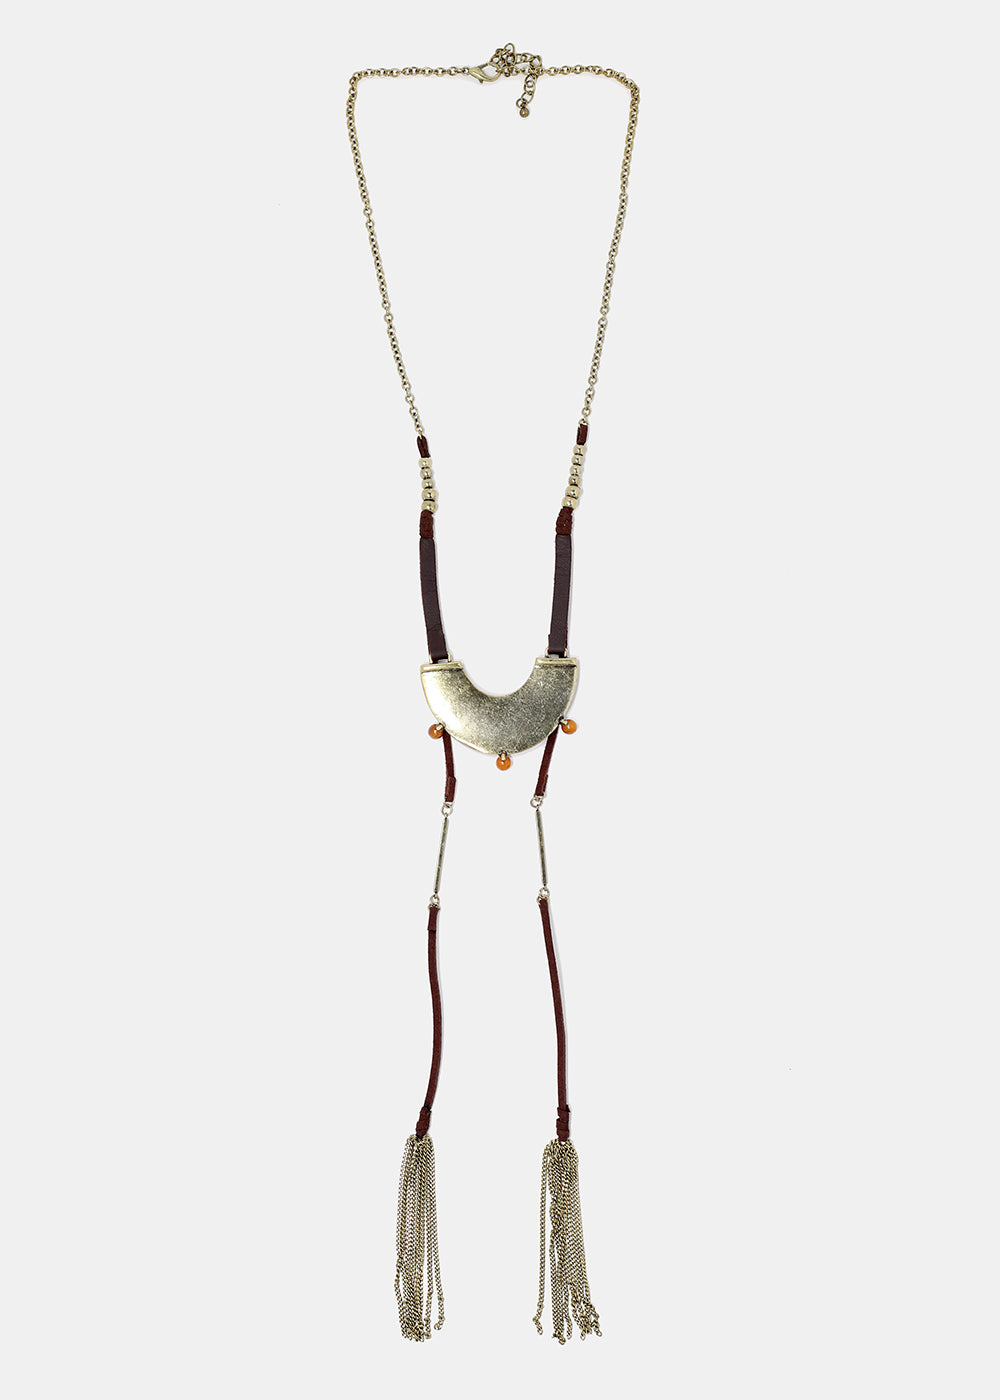 U-Shaped Metal Plate Necklace